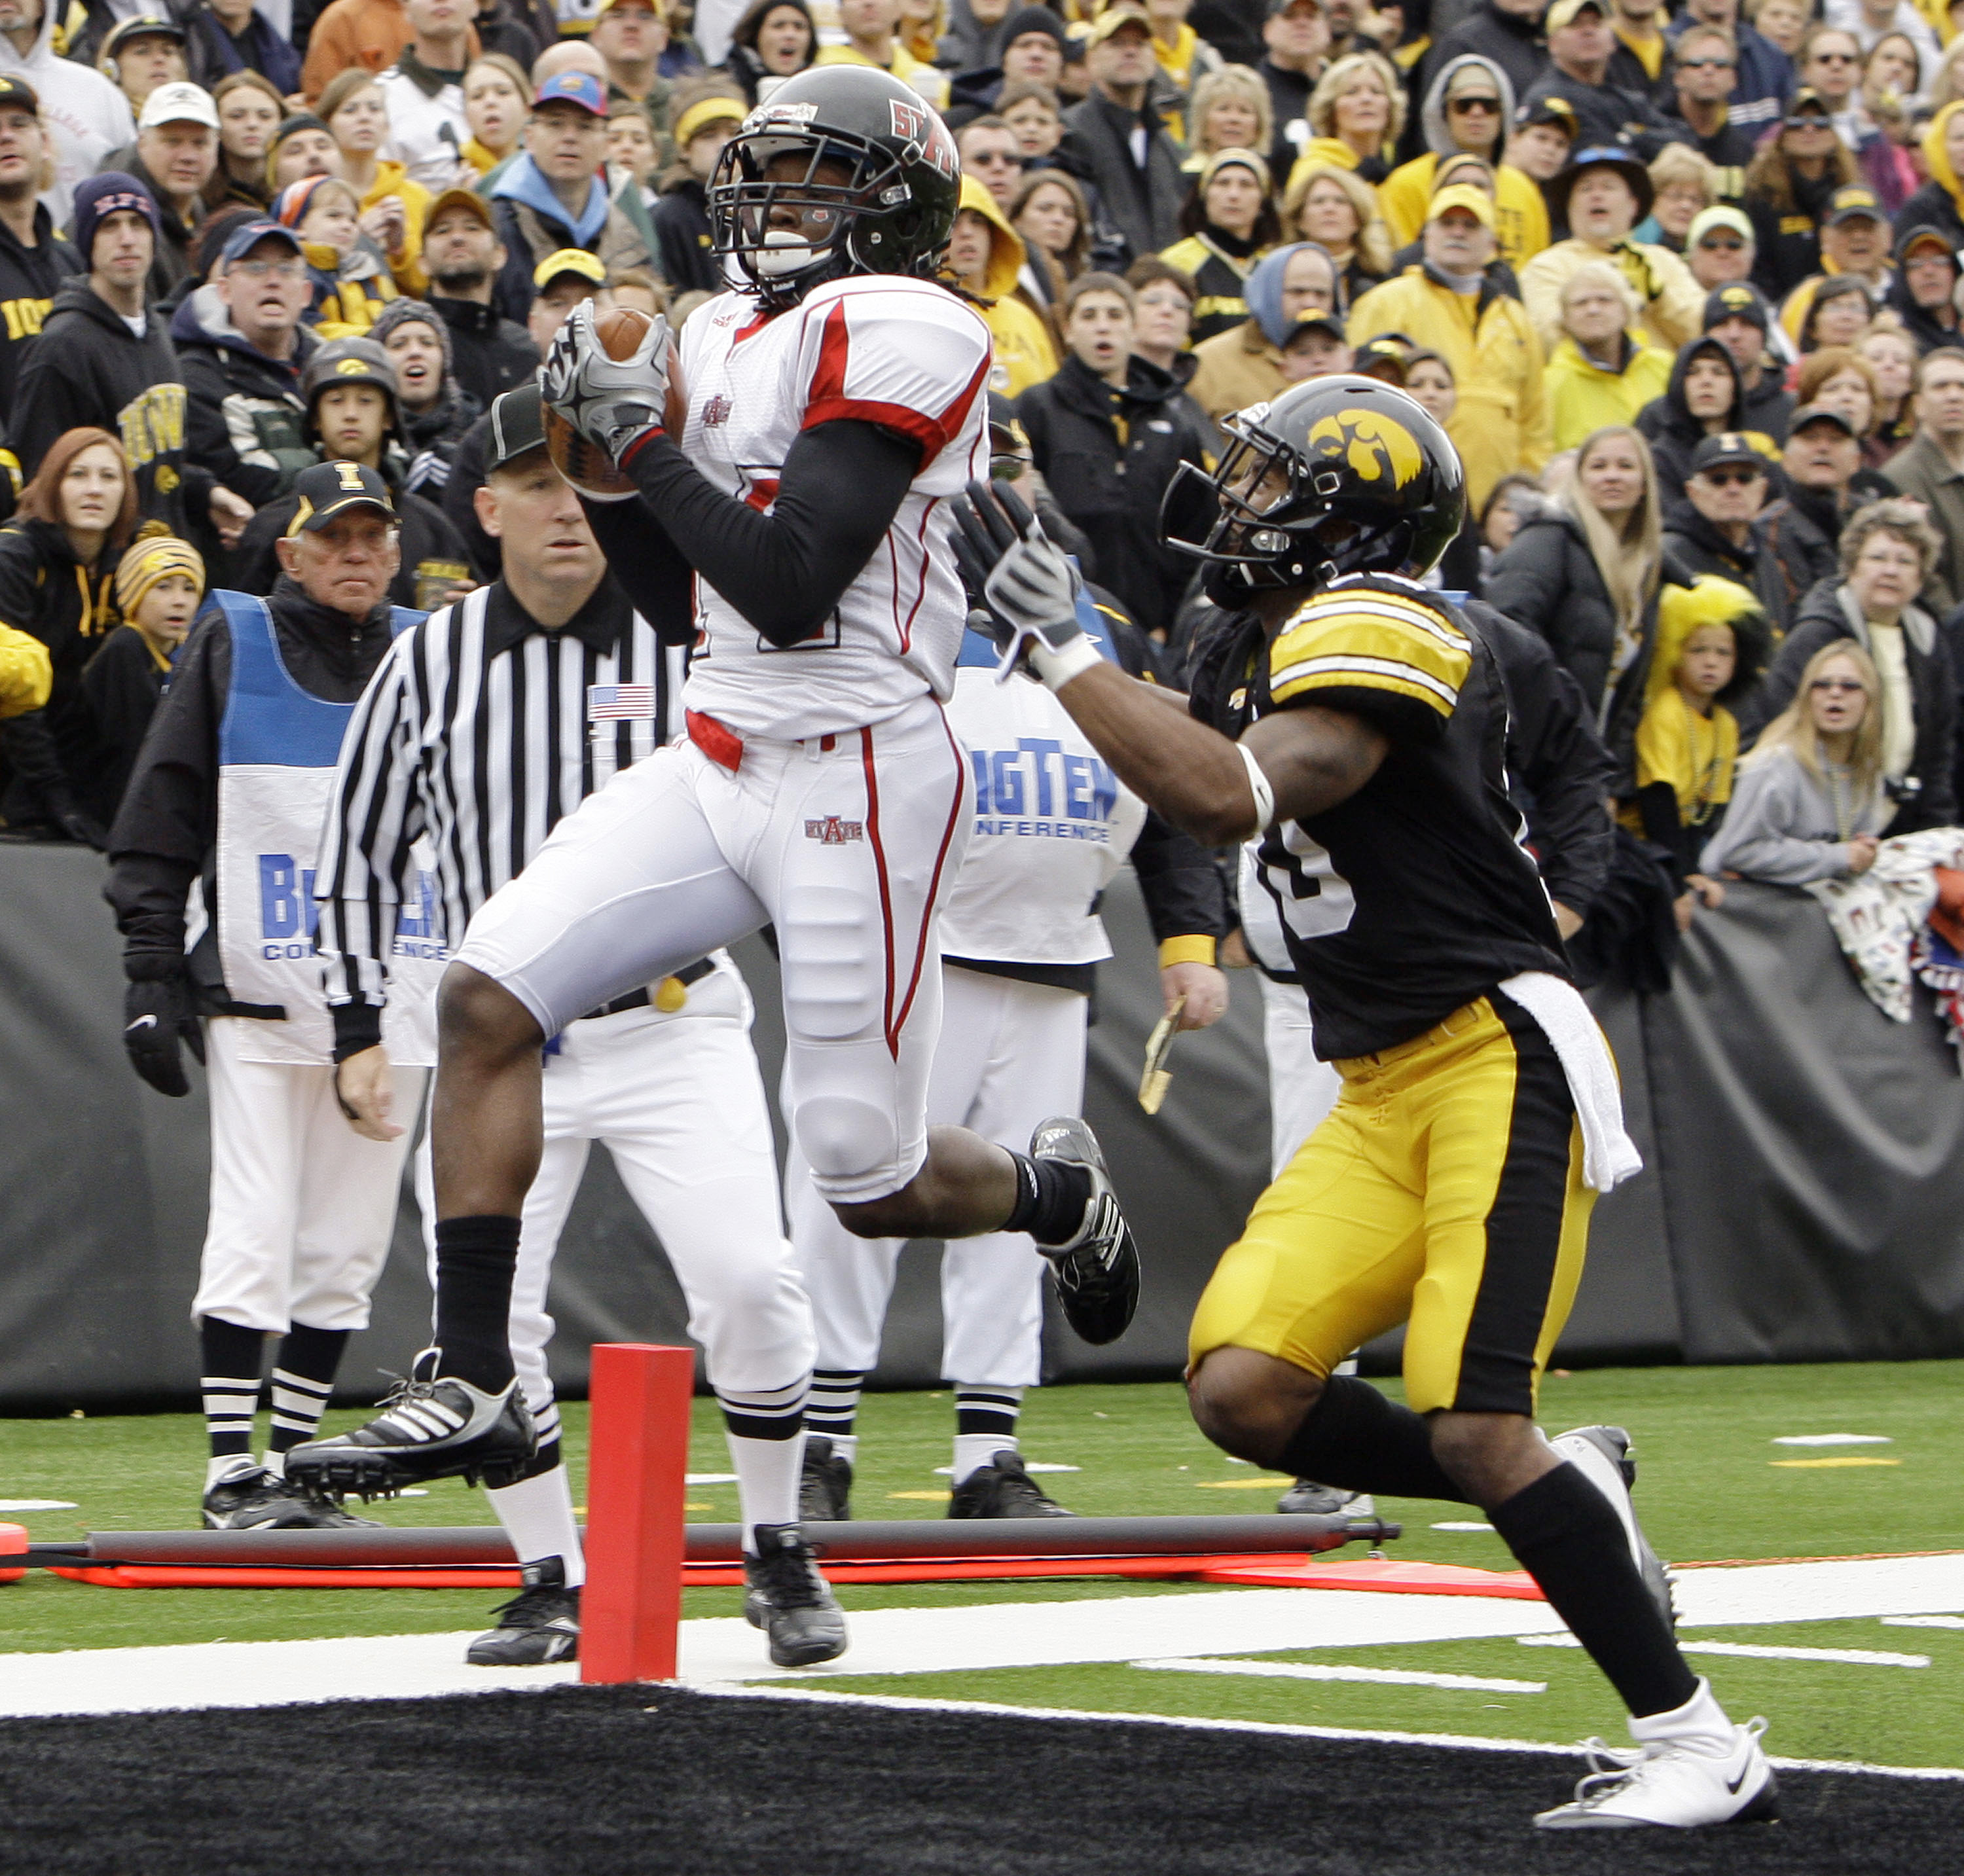 FILE -  In this Oct. 3, 2009, file photo, Arkansas State's Brandon Thompkins, left, catches a touchdown pass over Iowa's William Lowe during the second quarter of an NCAA college football game in Iowa City, Iowa. The University of Iowa settled a lawsuit F